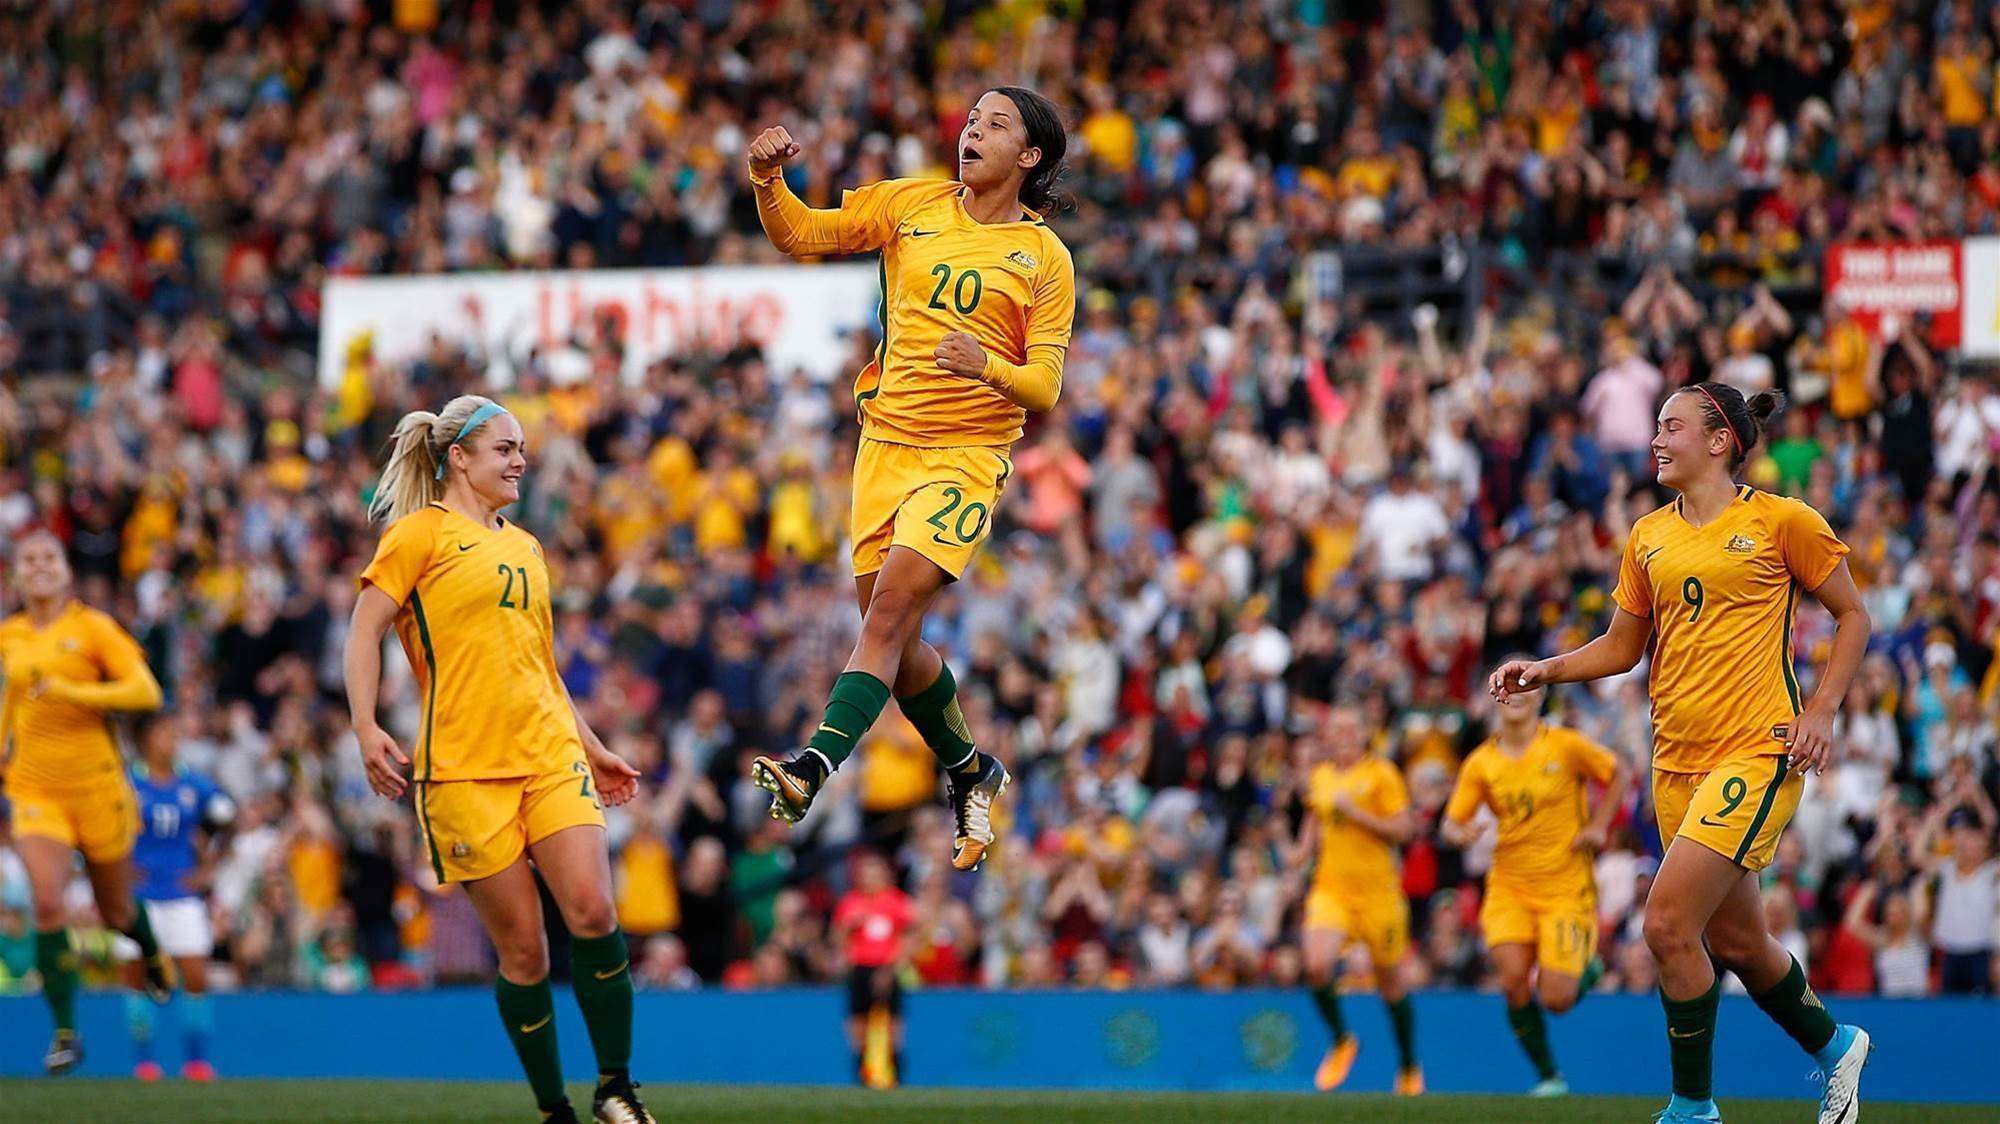 Matildas partner with Football Star Academy